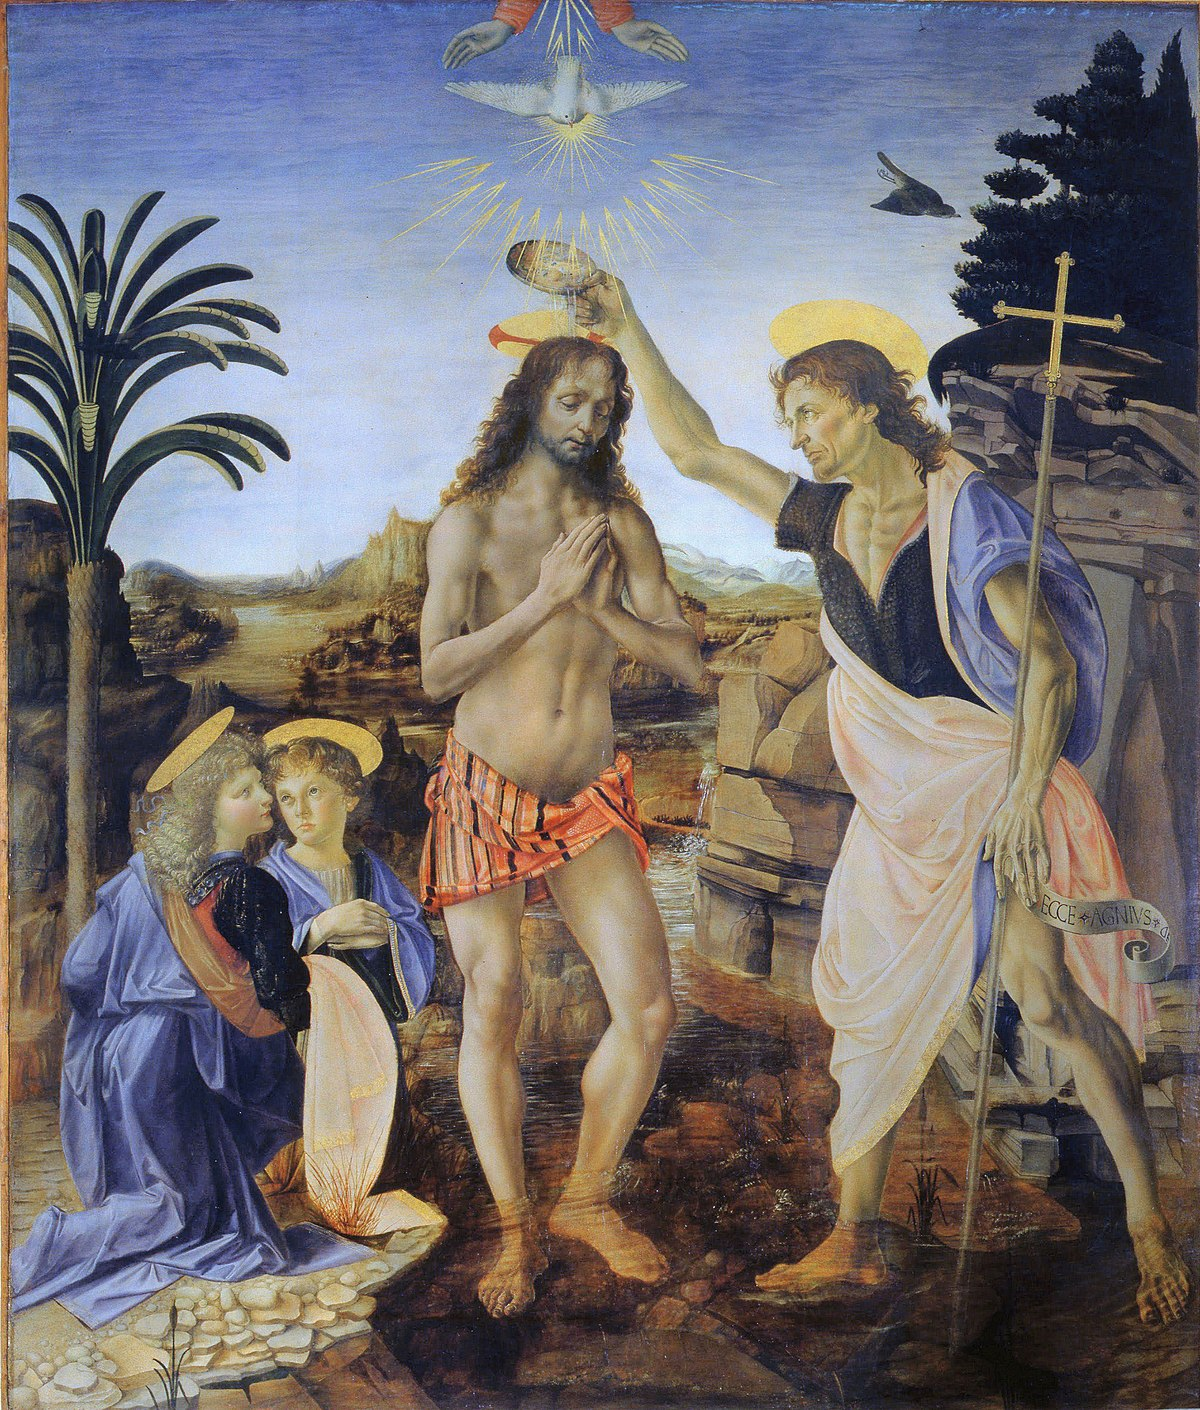 The Baptism of Christ (Verrocchio and Leonardo) - Wikipedia